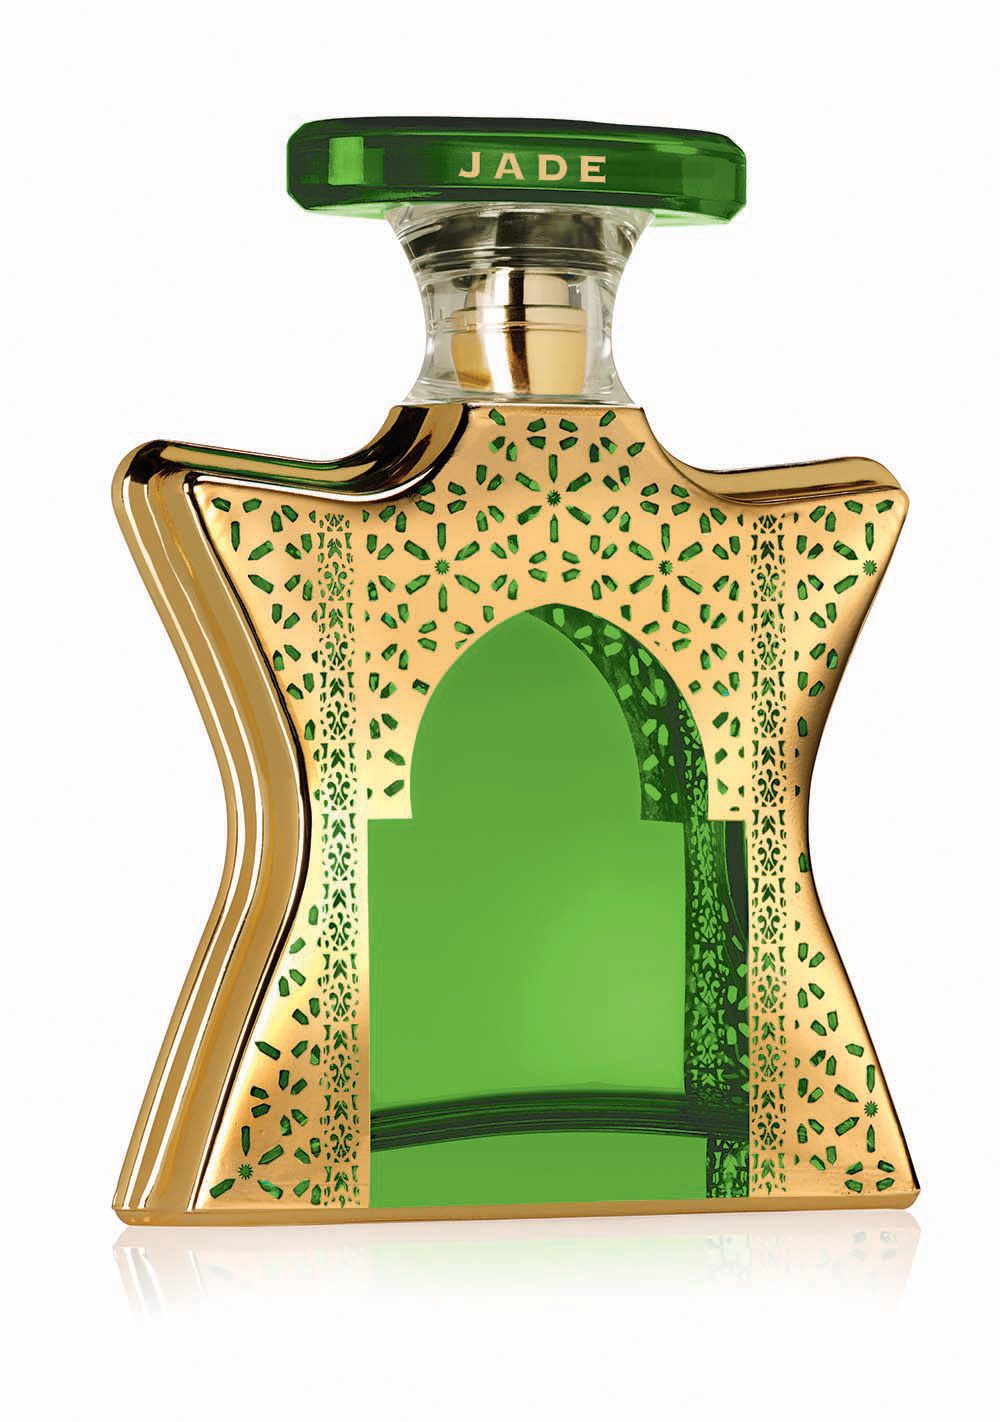 vibrant-and-high-energy-dubai-jade-blends-sparkling-florals-with-languid-incense